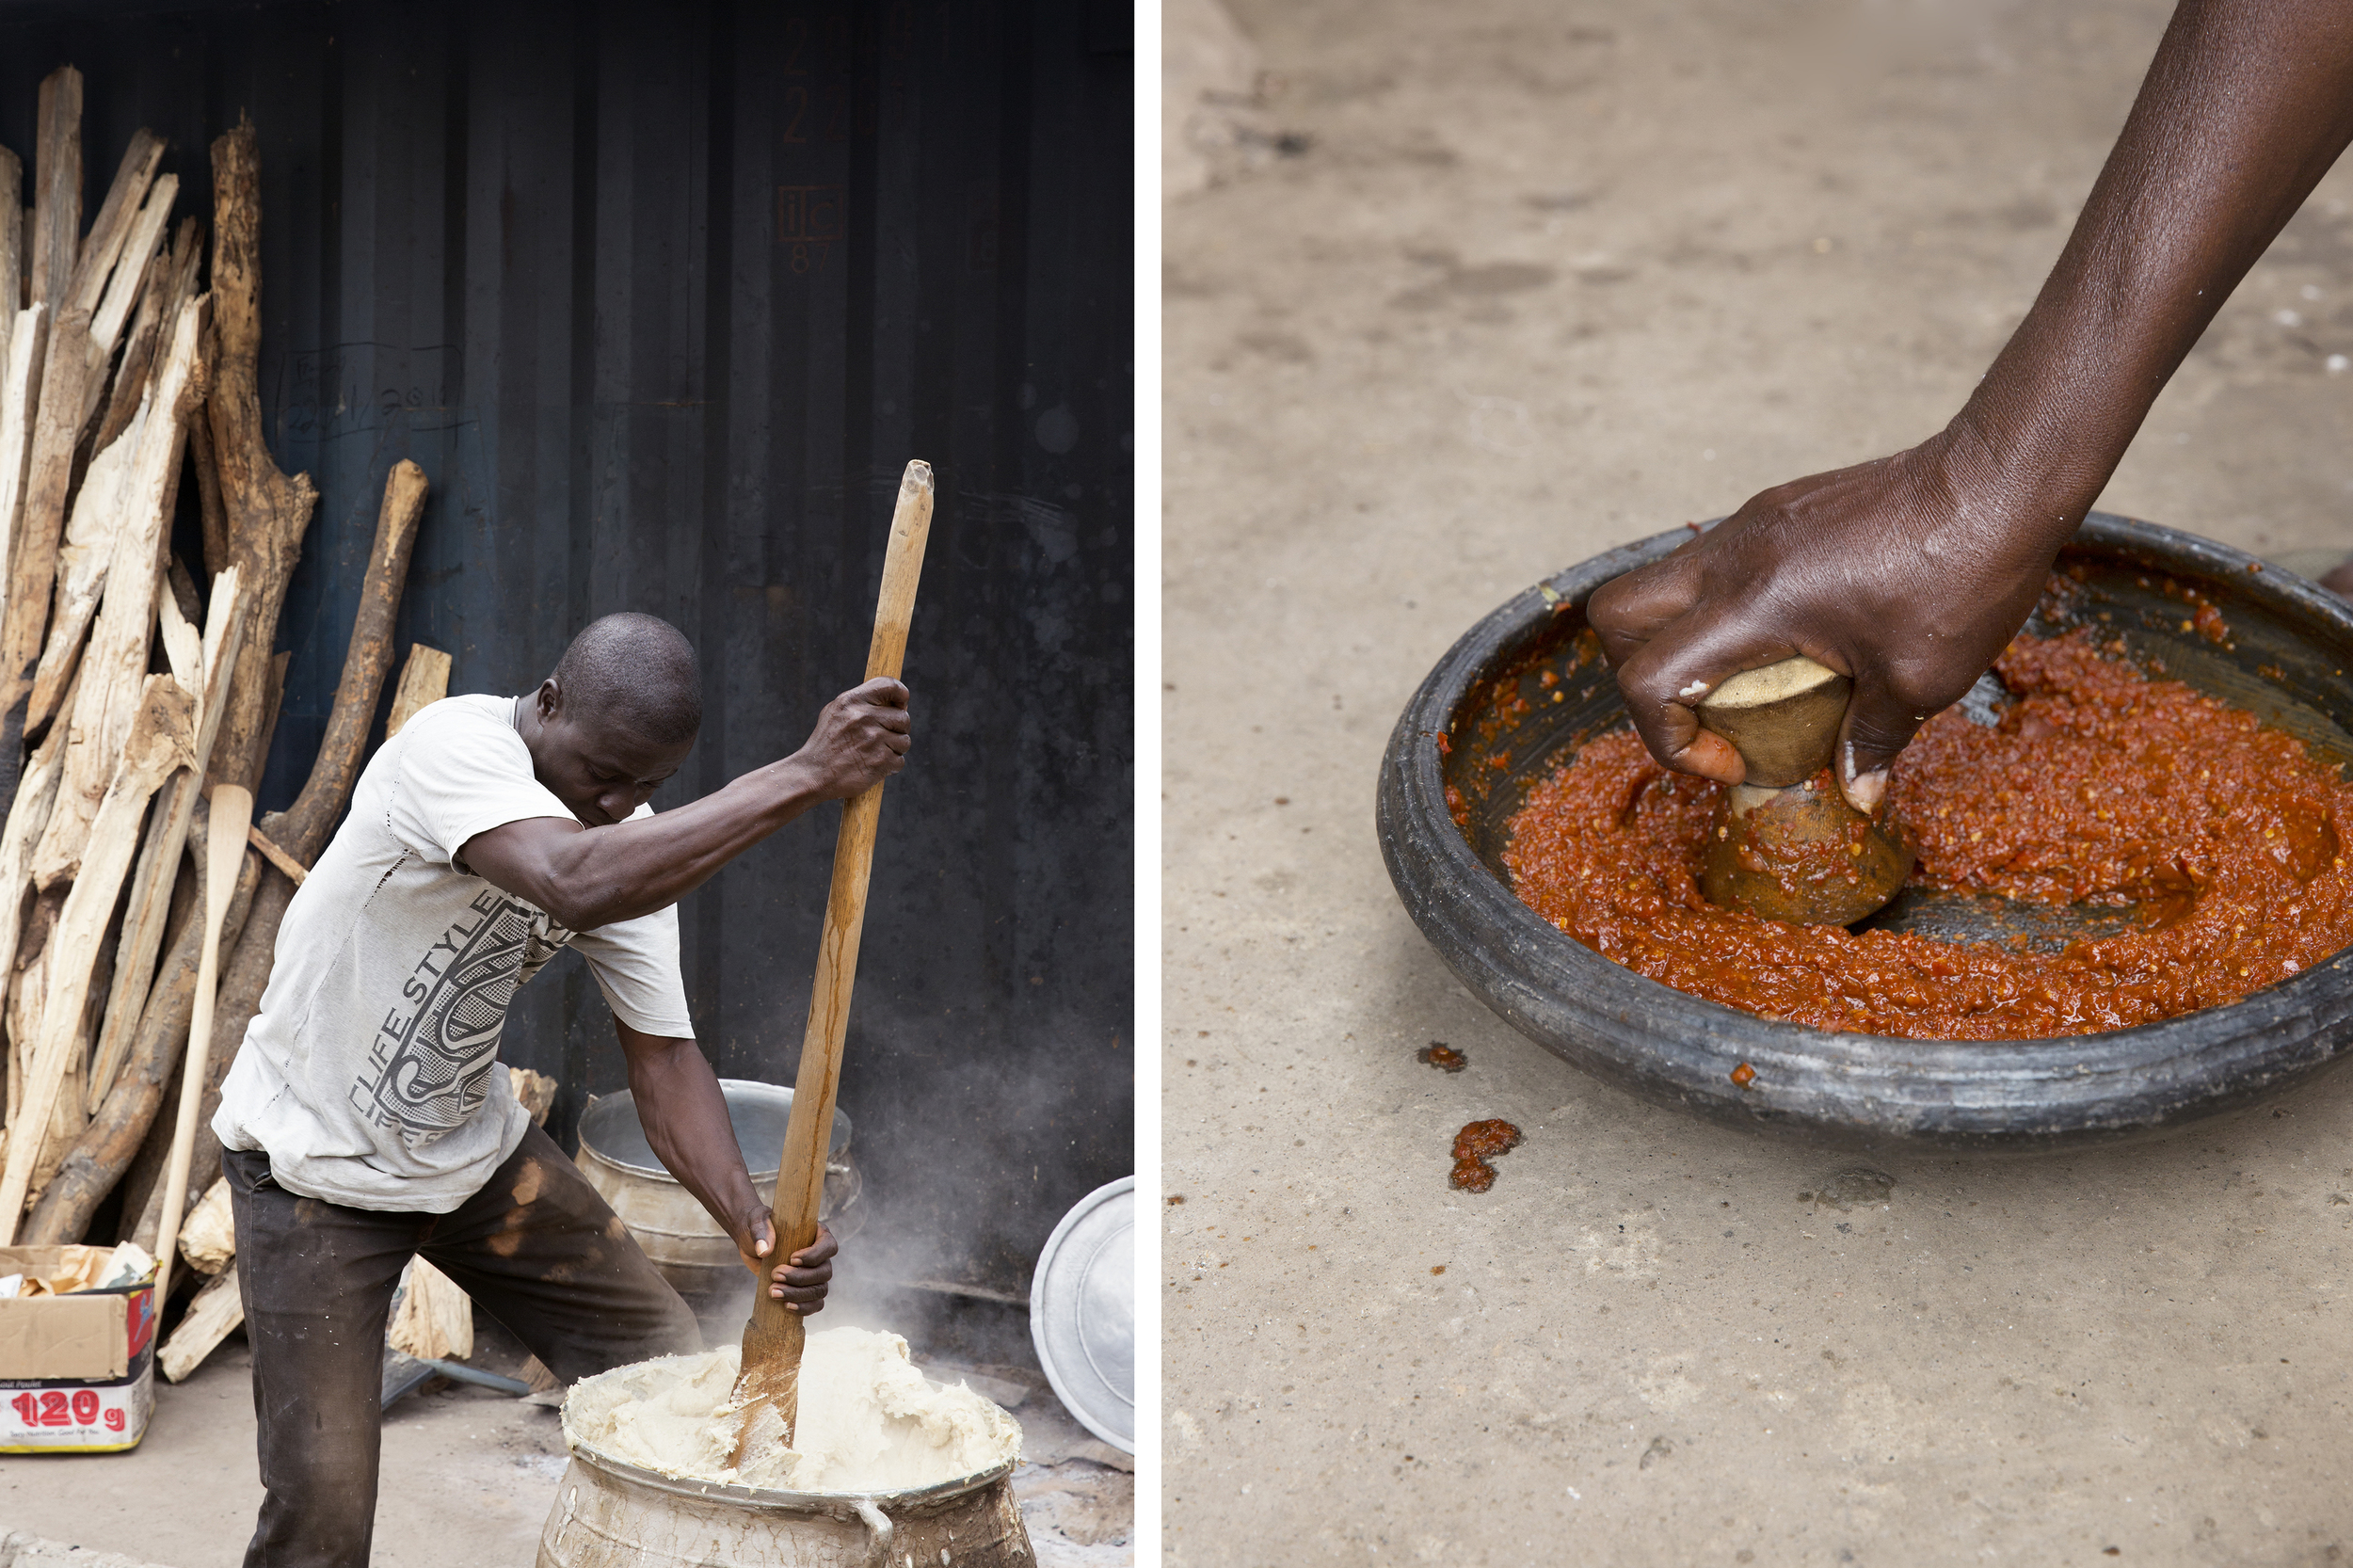 Photographs of the cooks preparing food (by me).